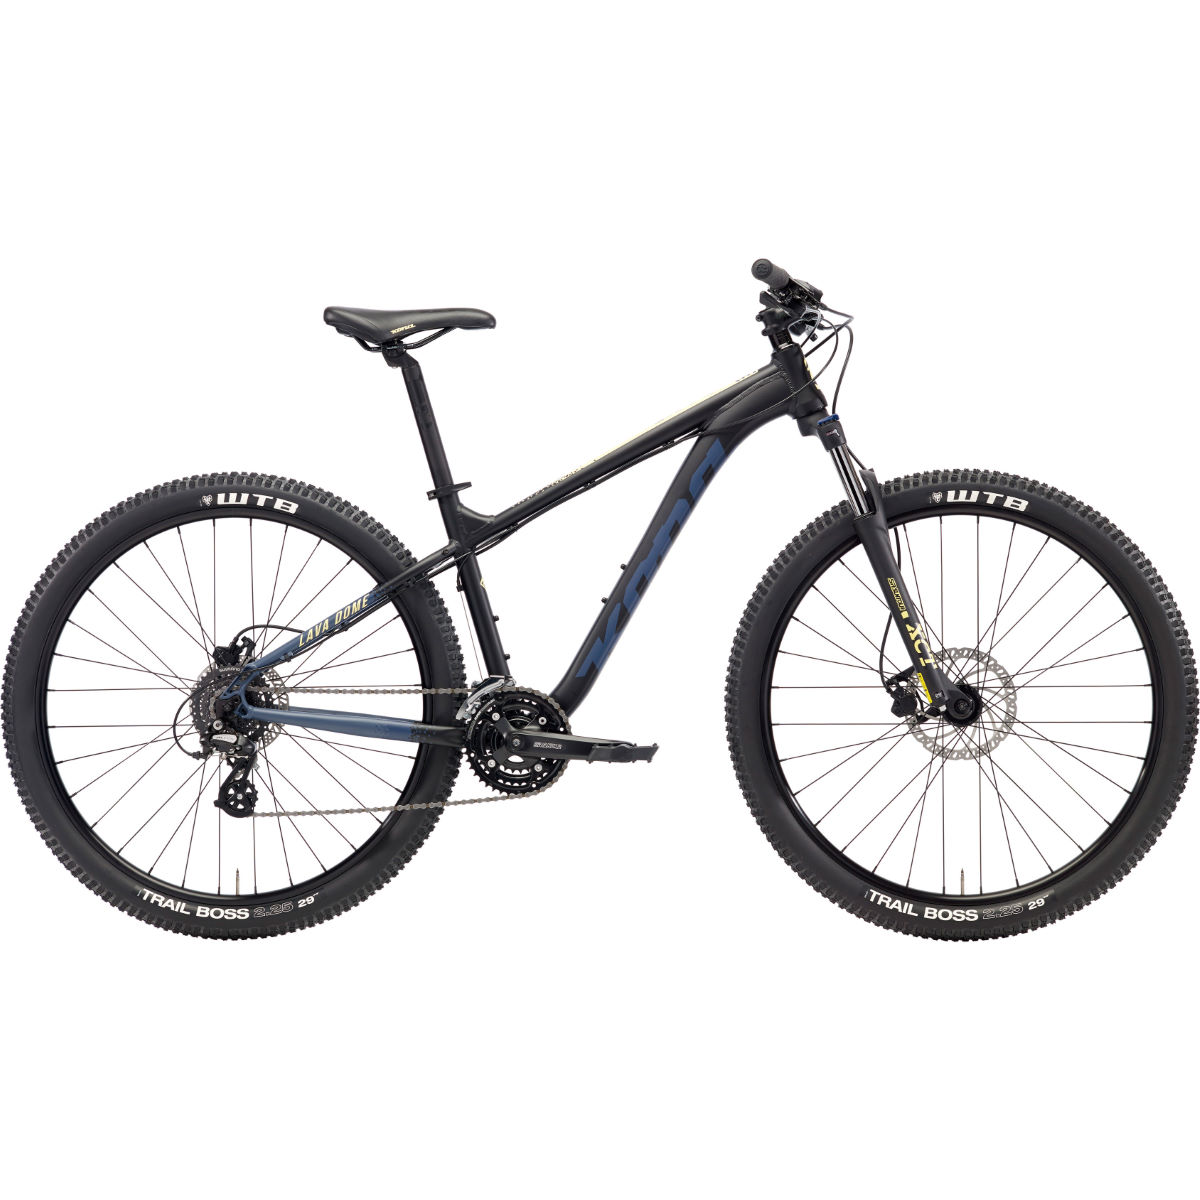 VTT Kona Lava Dome (2018) - Small Stock Bike Noir VTT semi-rigides